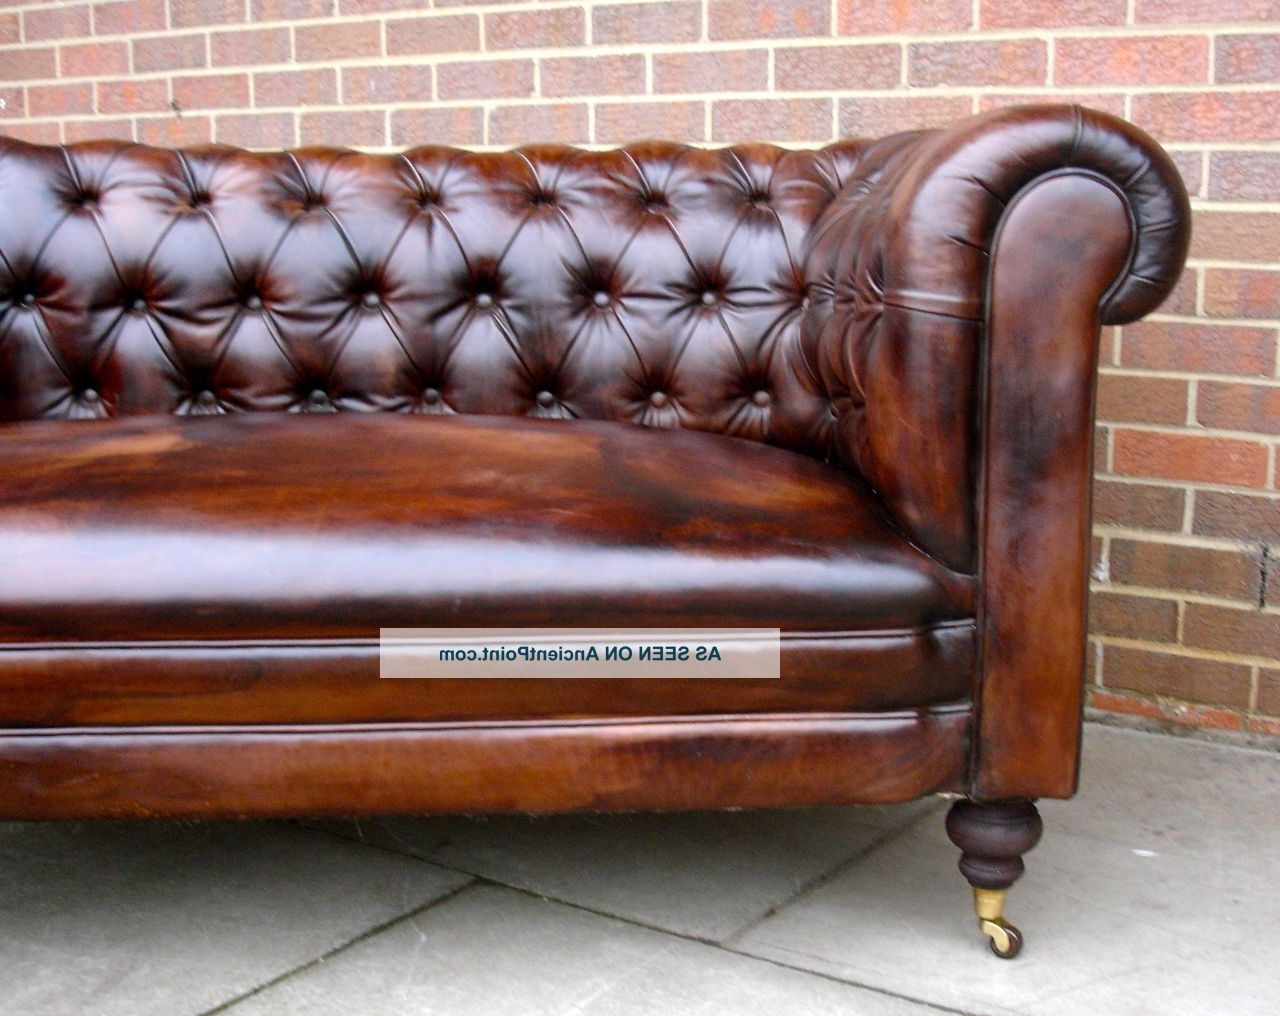 Most Current Leather Chesterfield Sofas In Used Leather Chesterfield Sofa – Home And Textiles (View 15 of 20)